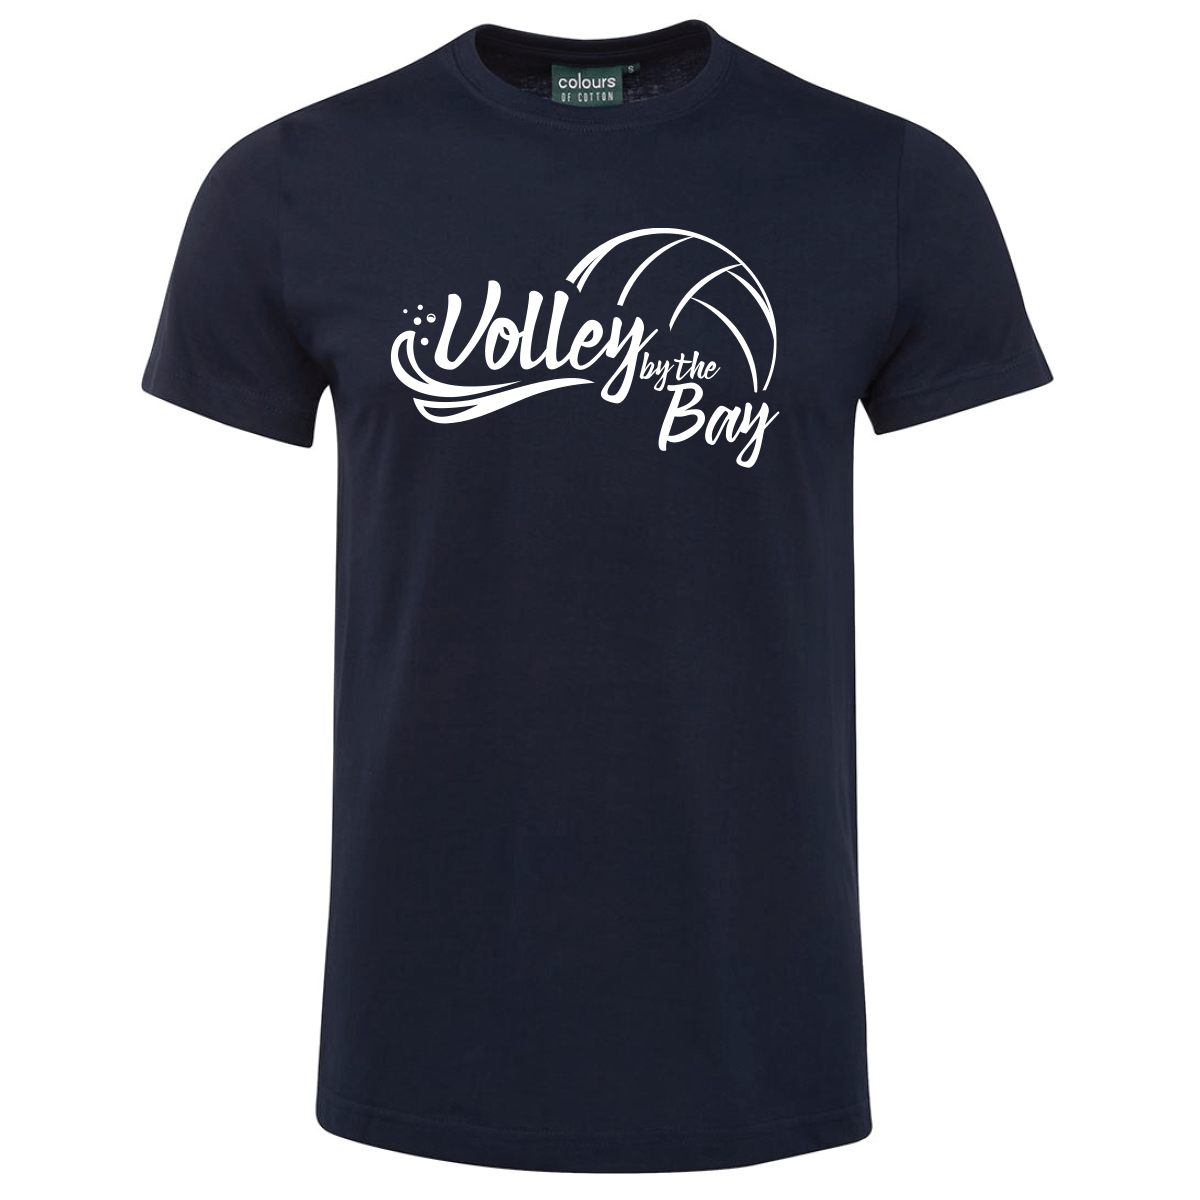 By the Bay - Navy Tee Ladies 1